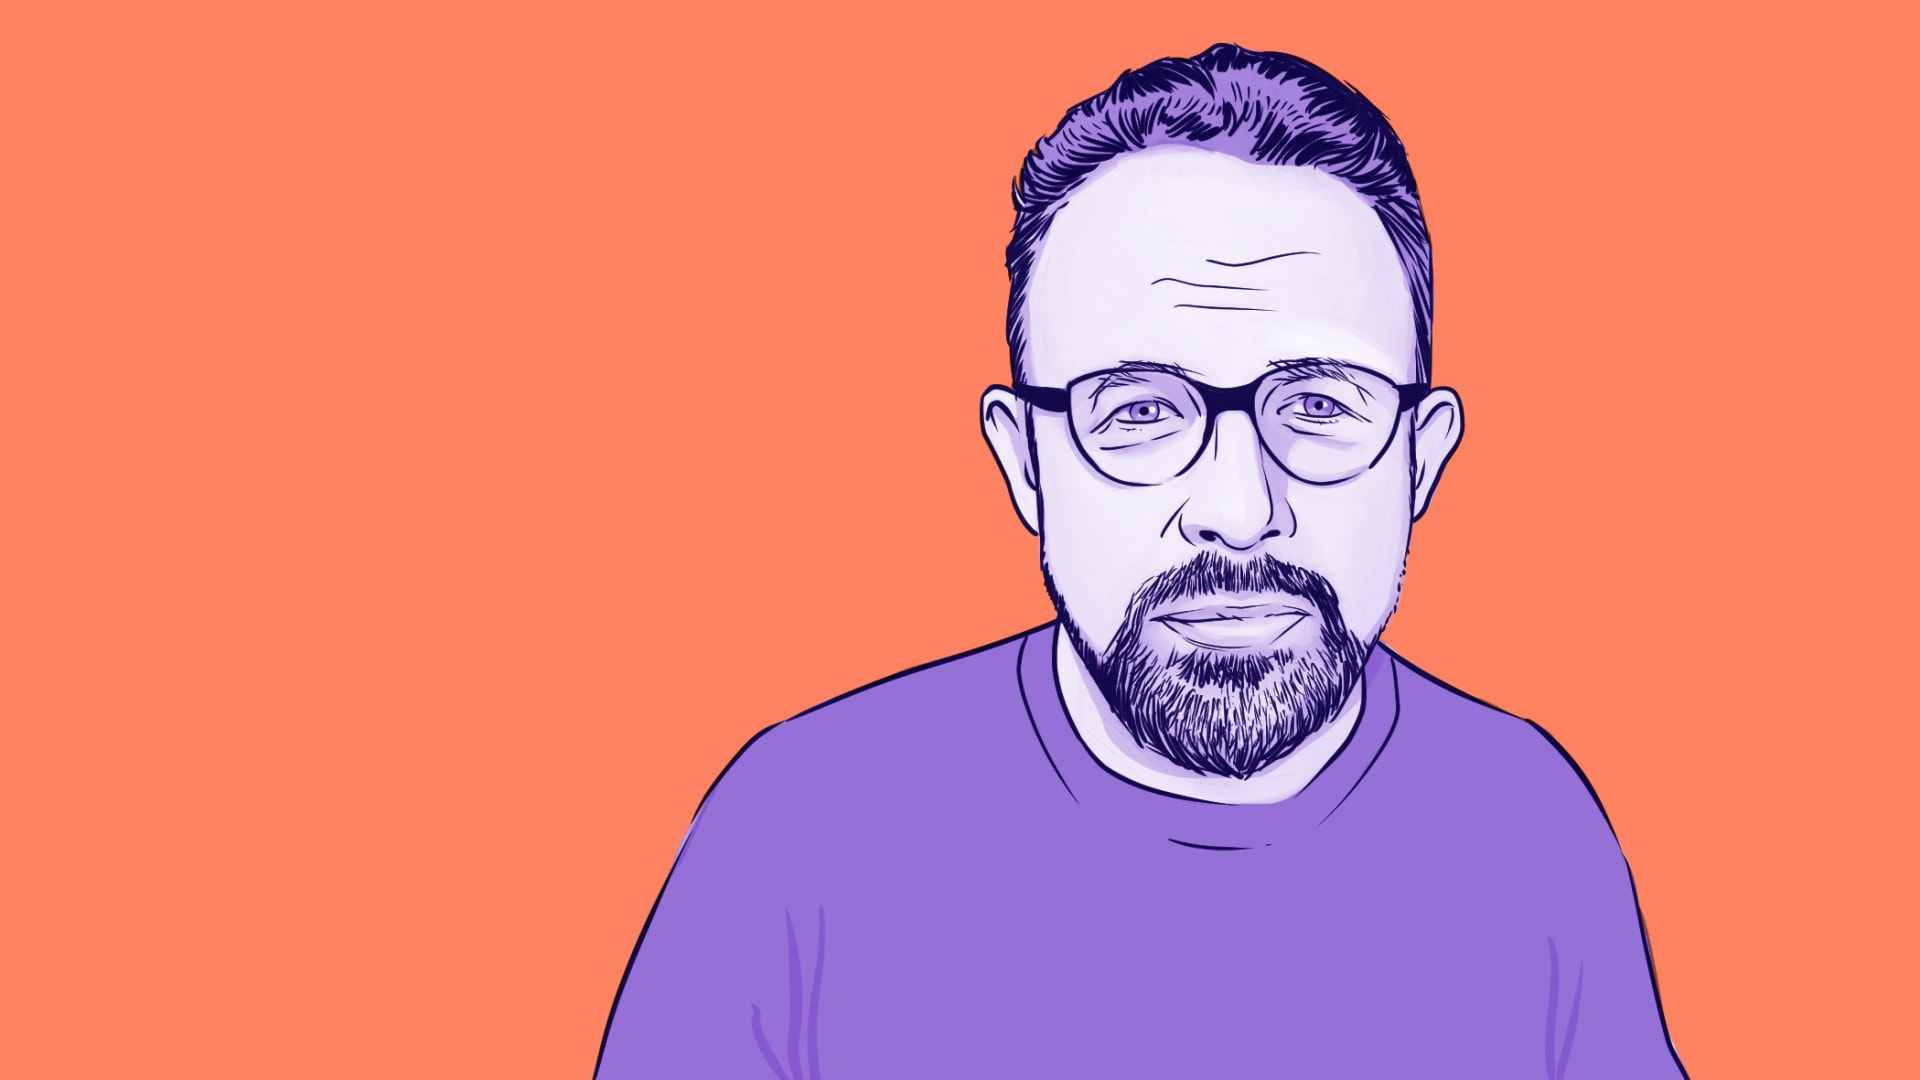 Evernote Founder Phil Libin Won't Touch This Business Model